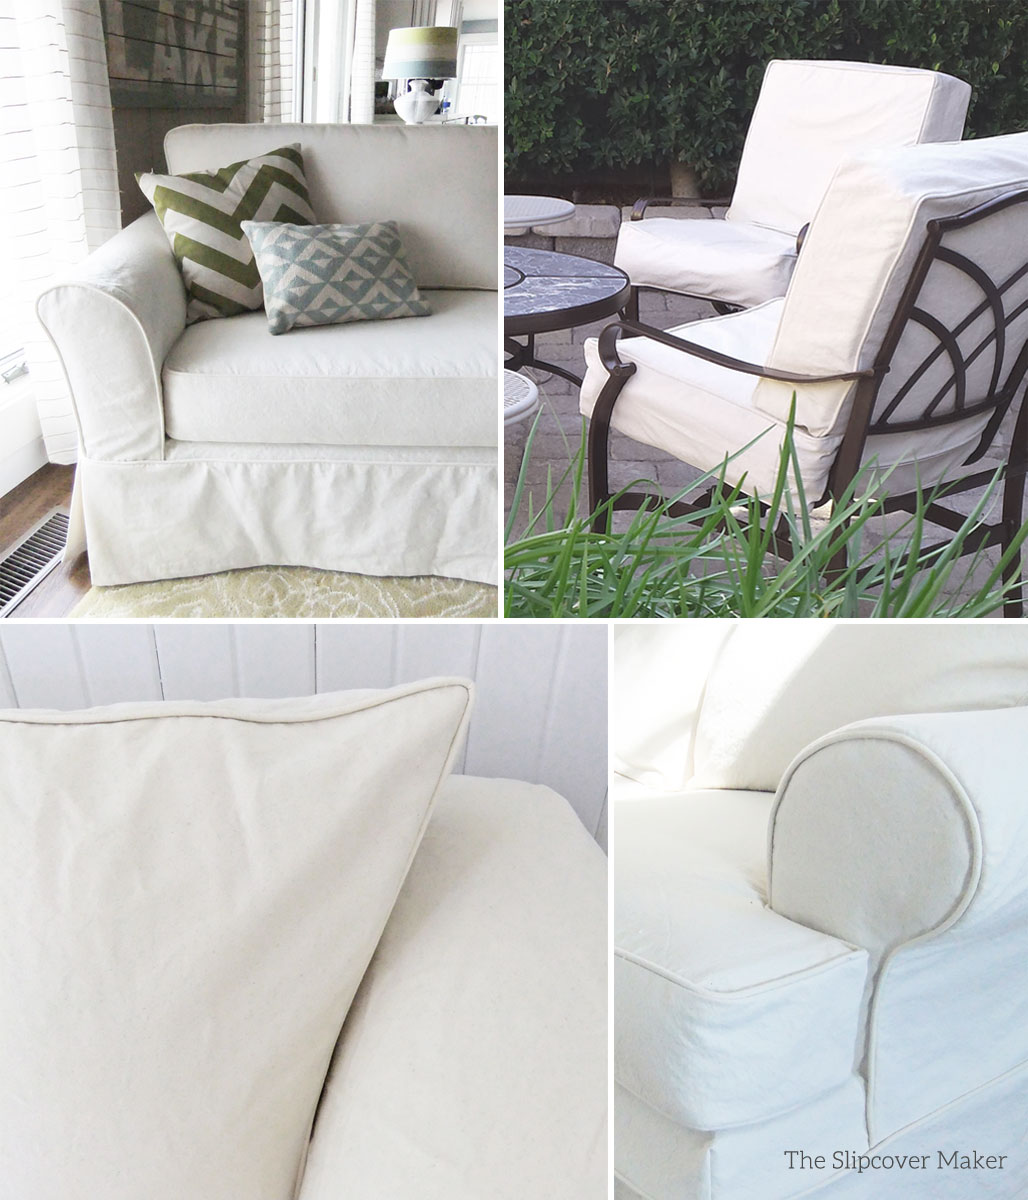 white sofa slipcover cotton set cushion covers the maker custom slipcovers tailored to fit